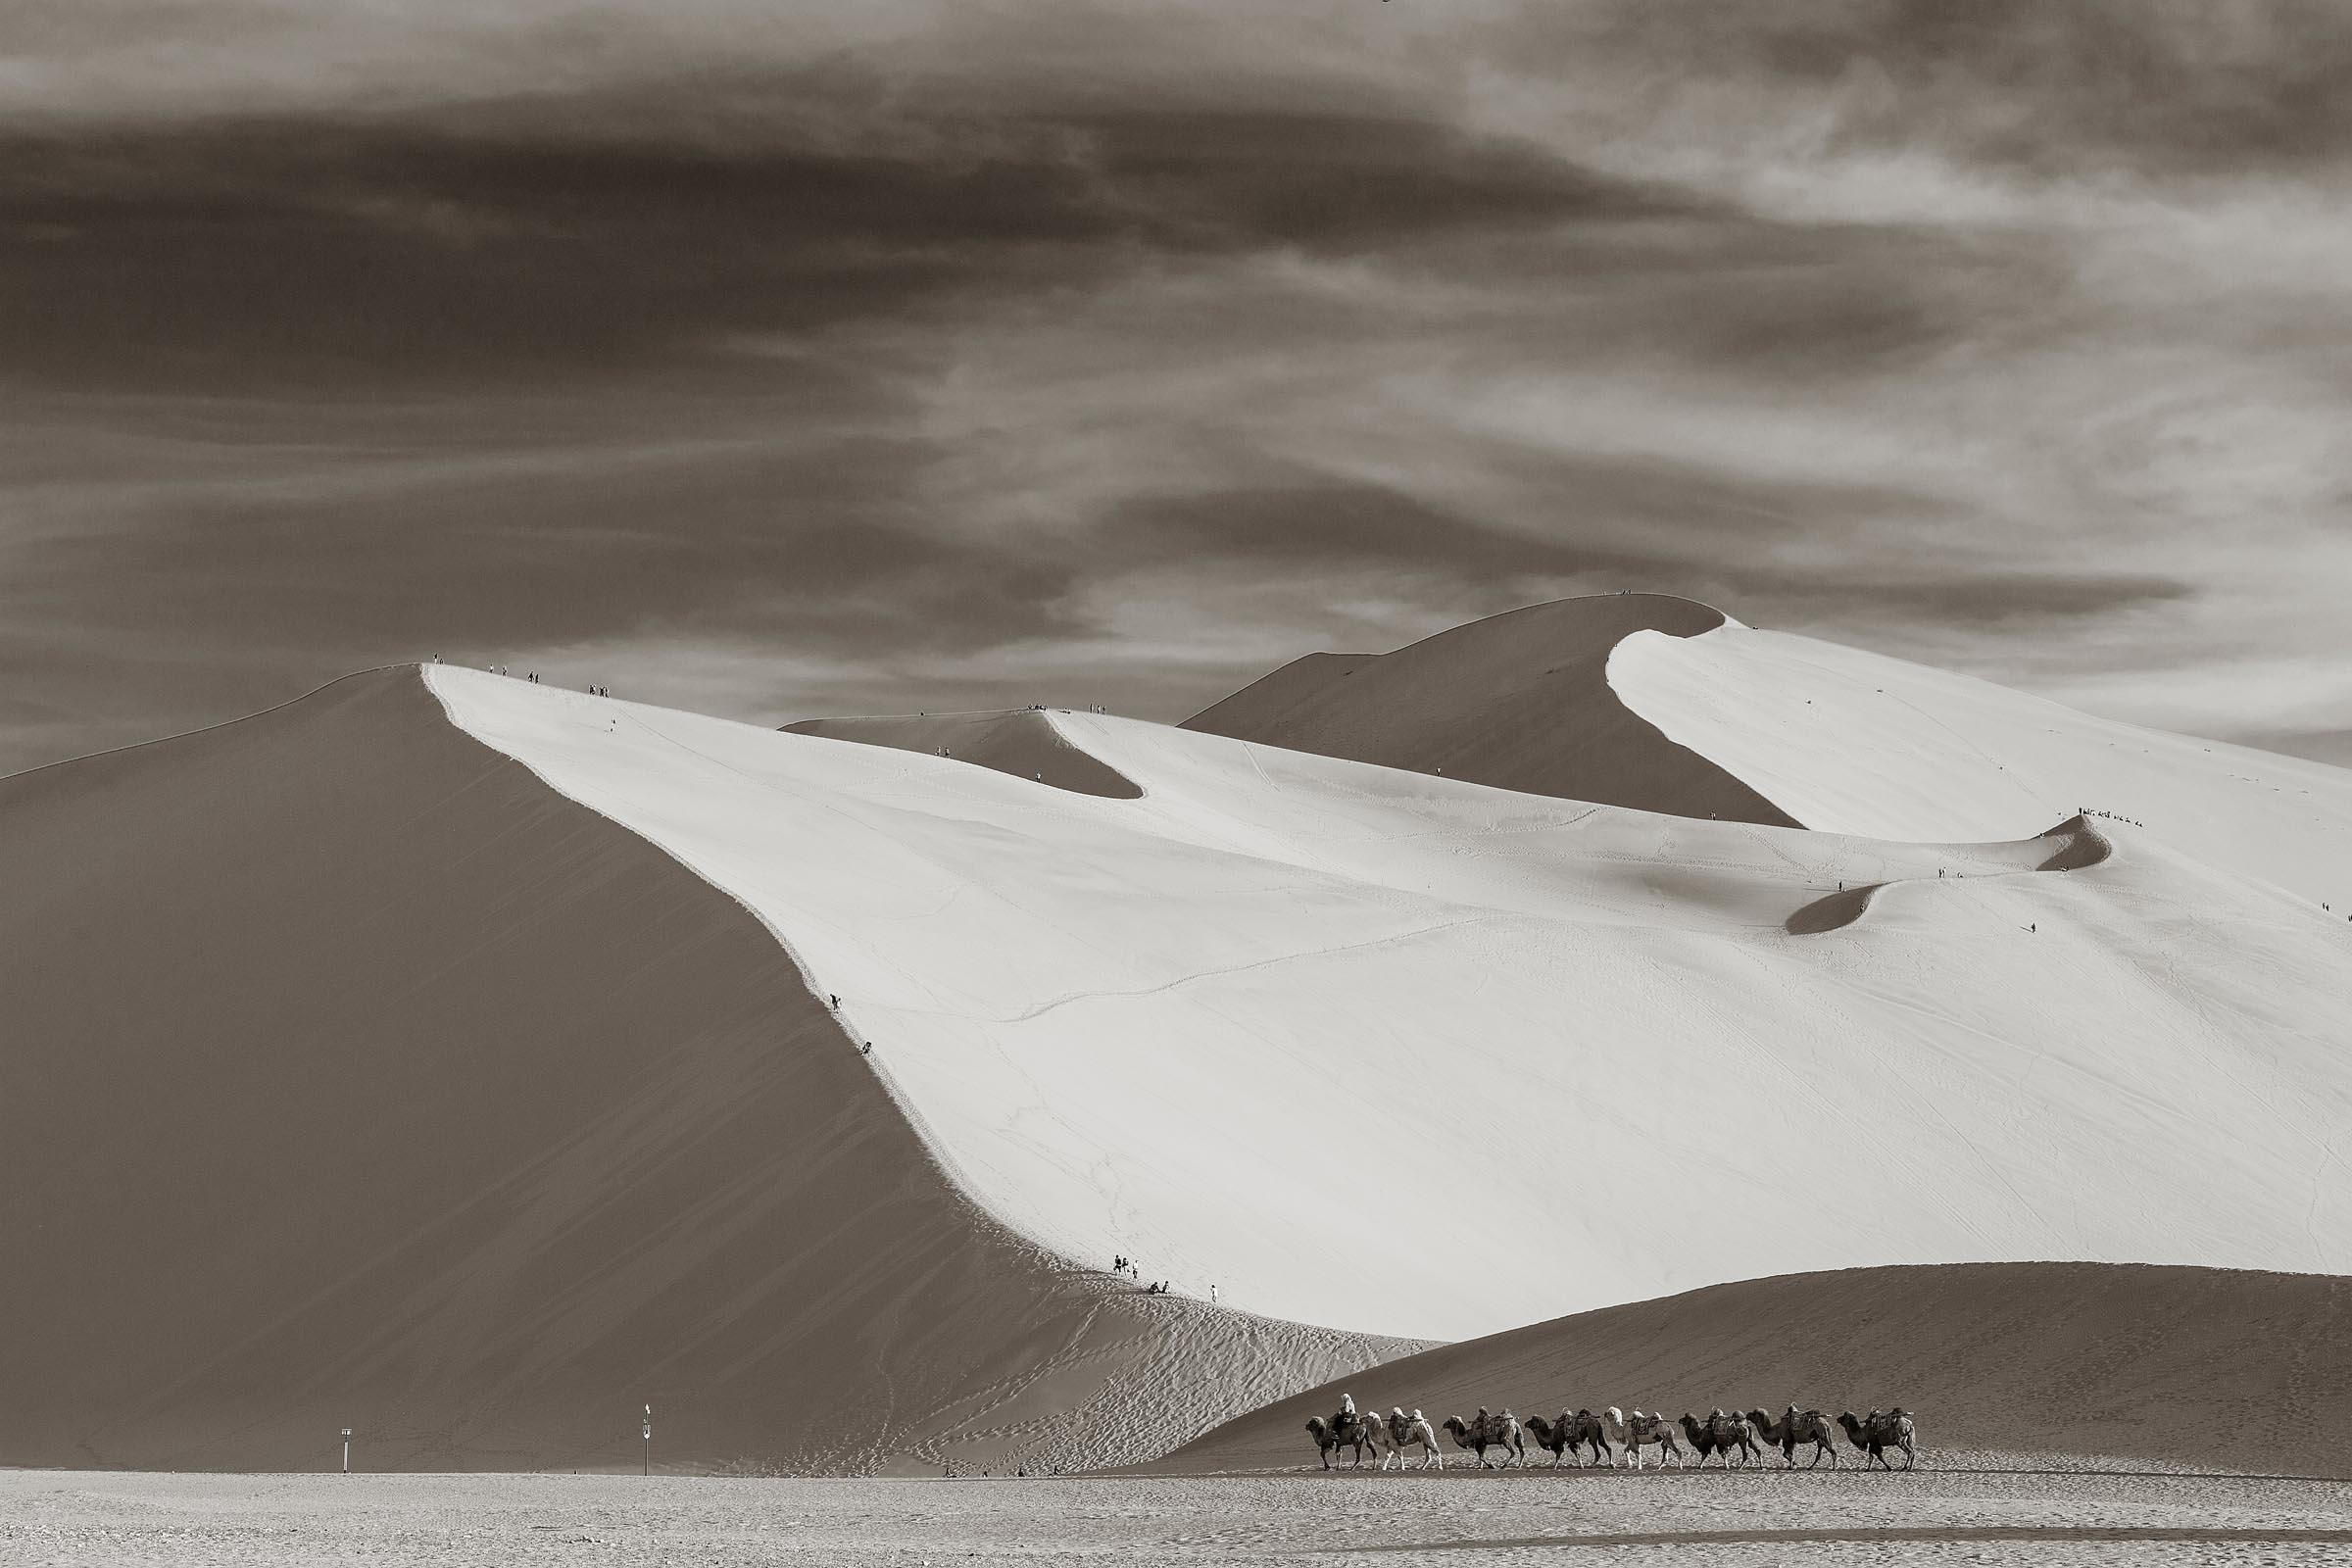 A camel caravan passes in front of the large sand dunes in Donhuan, China.